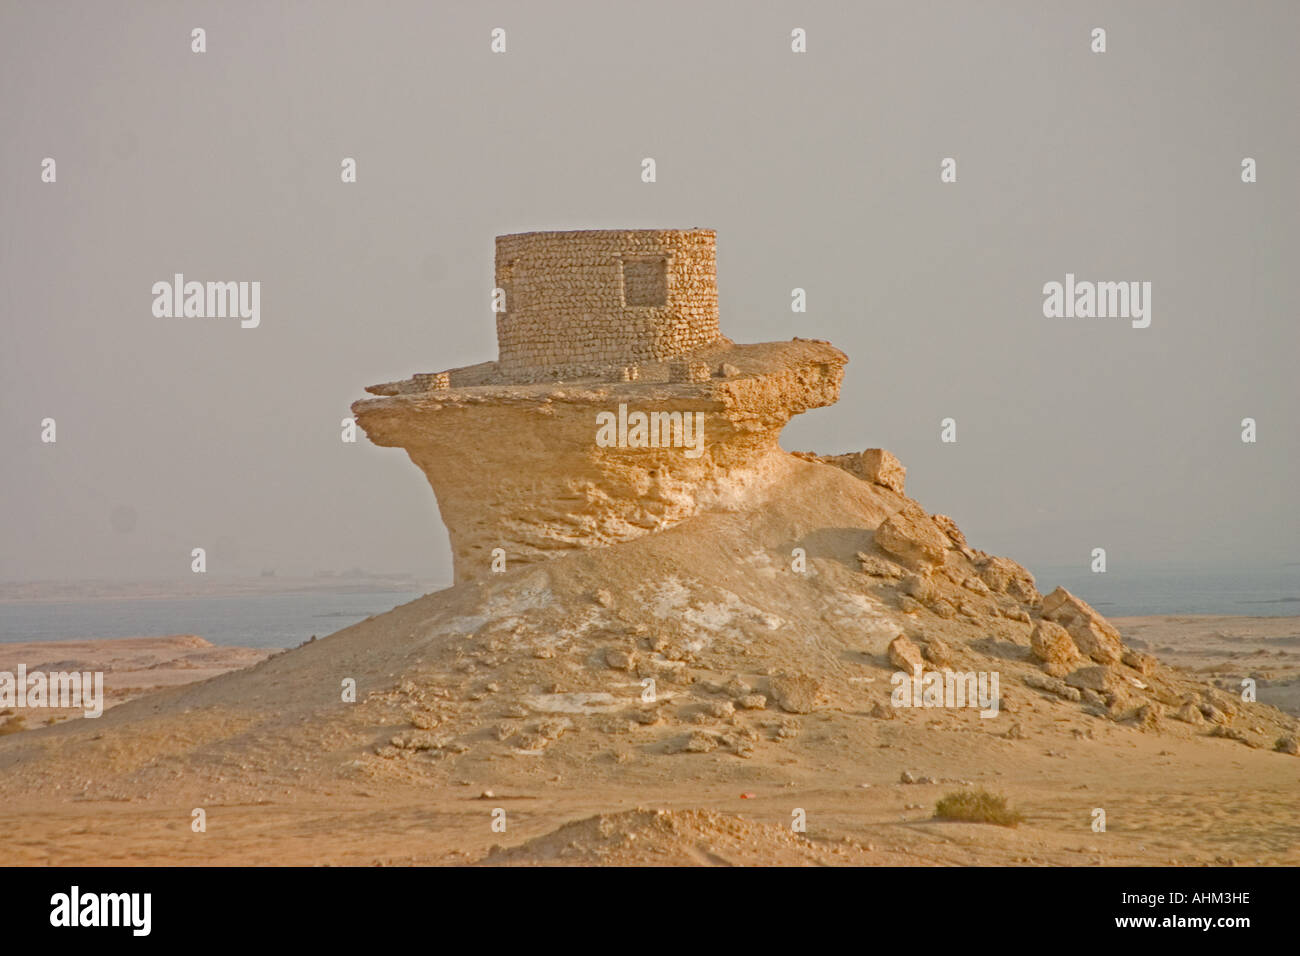 a shelter on a mushroom rock in qatar - Stock Image